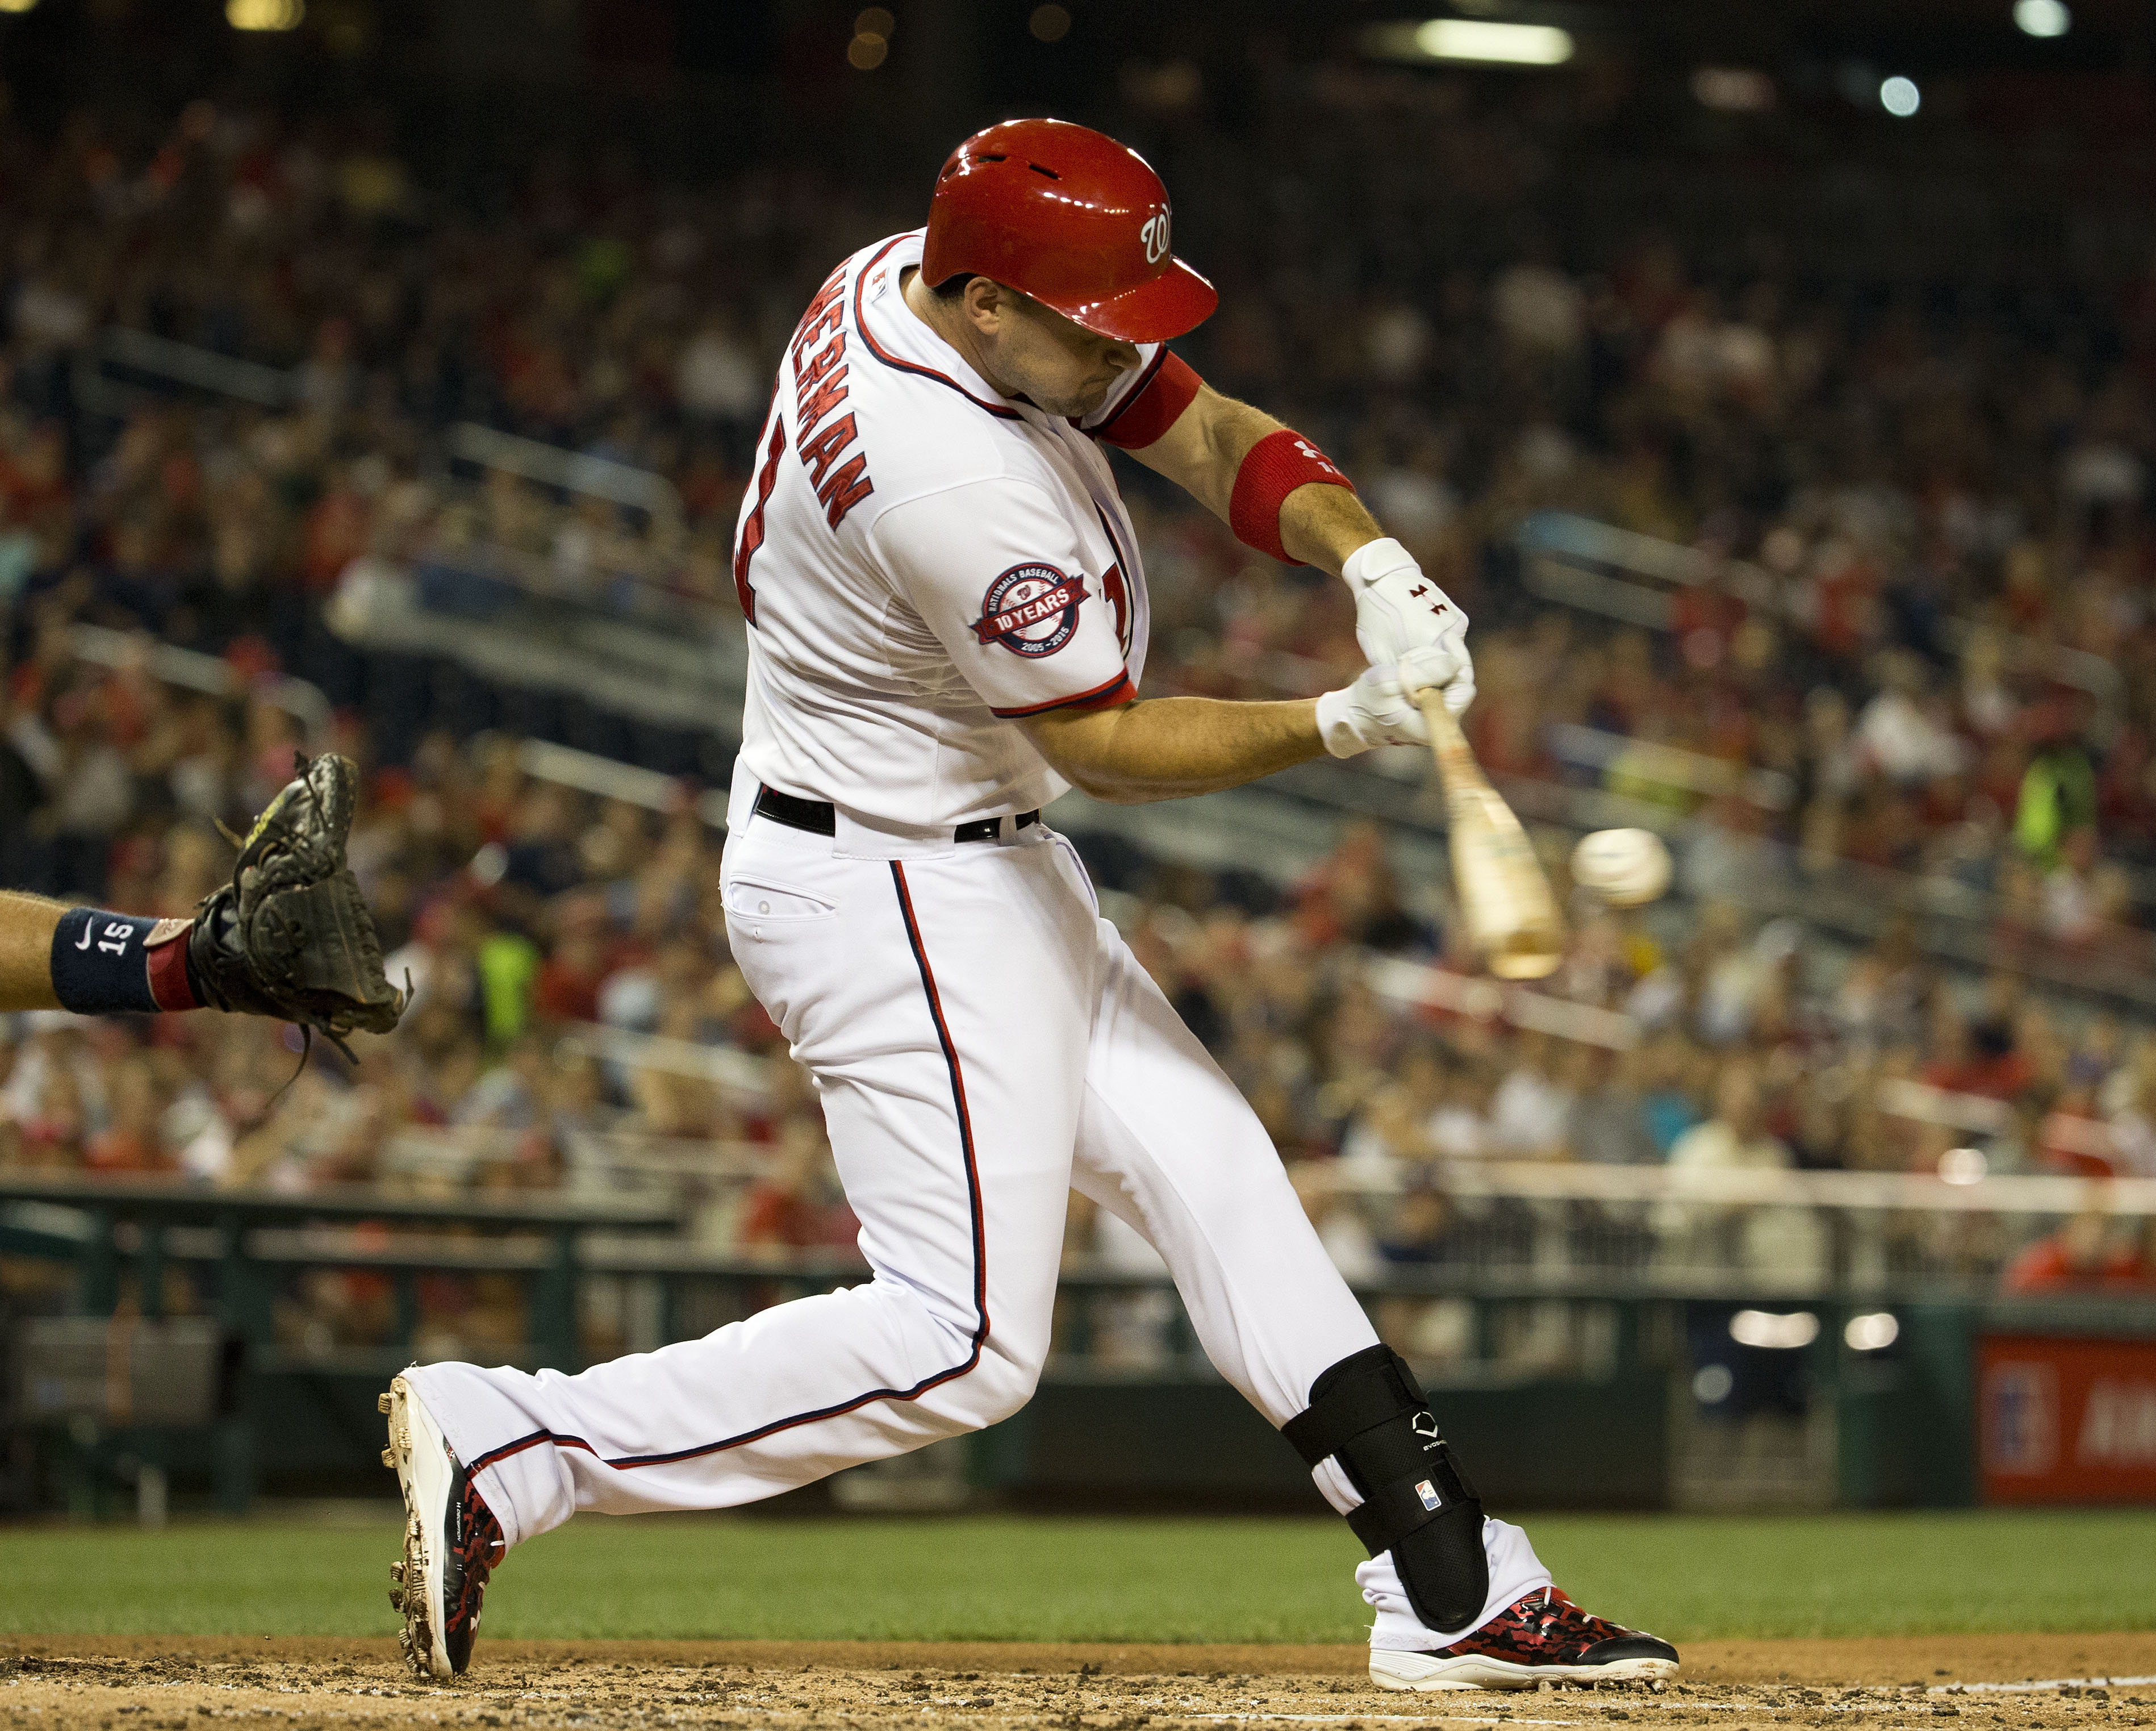 FILE - In this Sept. 3, 2015 file photo, Washington Nationals' Ryan Zimmerman hits a two-run single against the Atlanta Braves during a baseball game at Nationals Park in Washington. In his first interview since reporting to spring training, Zimmerman vig